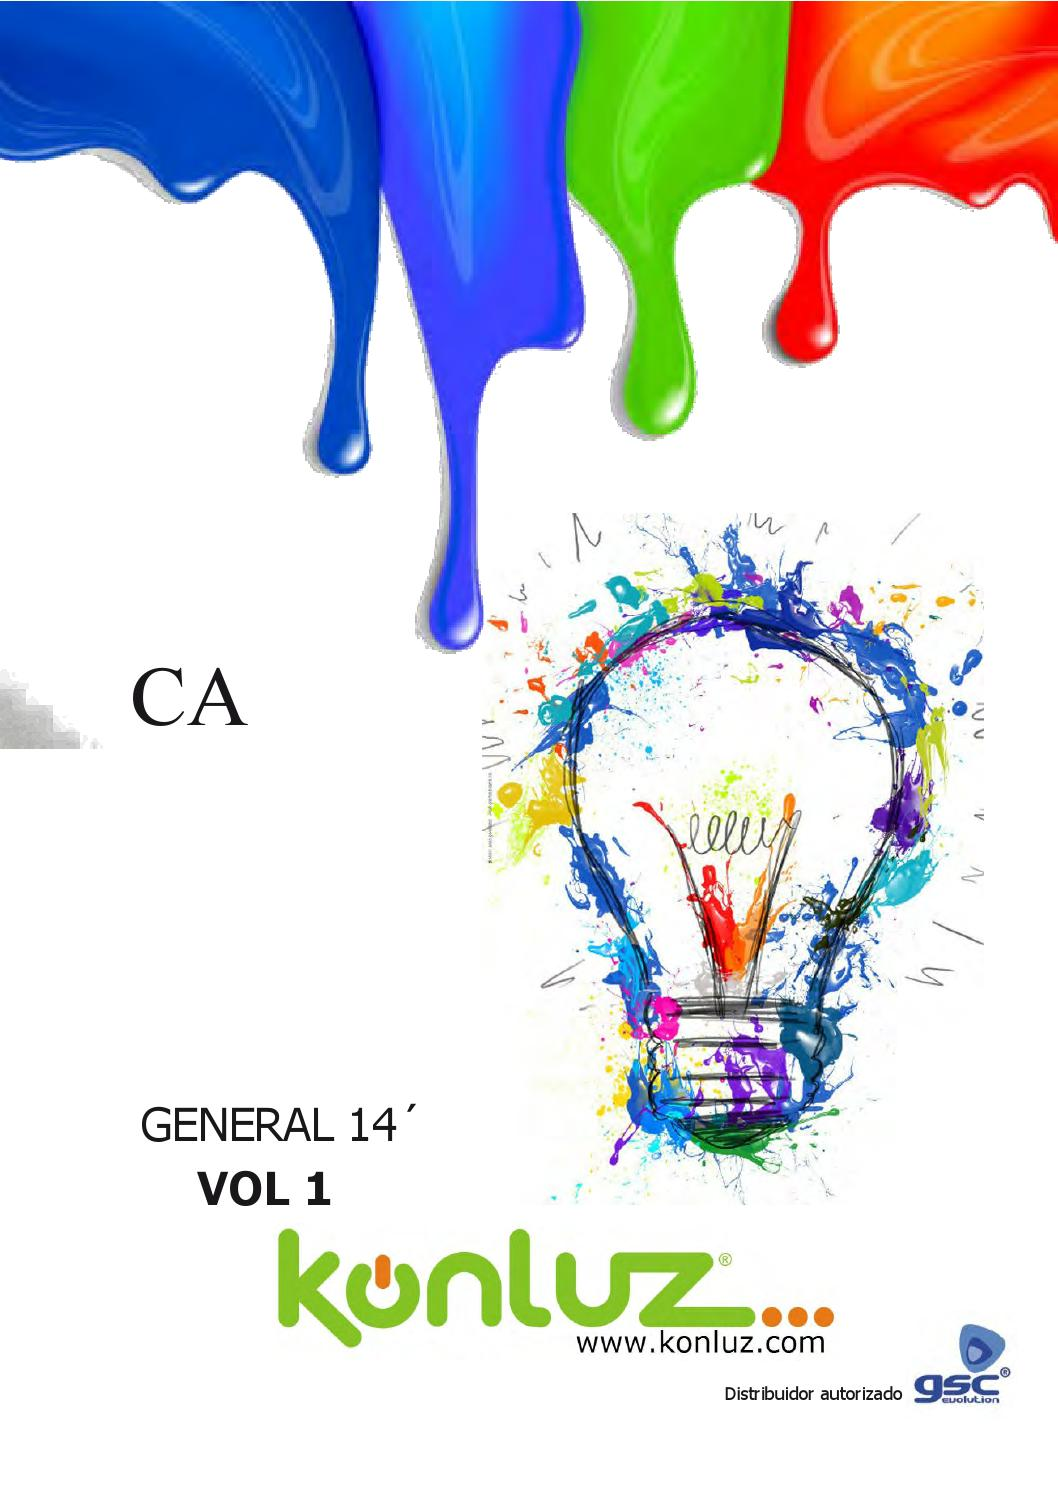 Catalogo General Konluz 2014 Vol 1 By Konluz Import S L Issuu